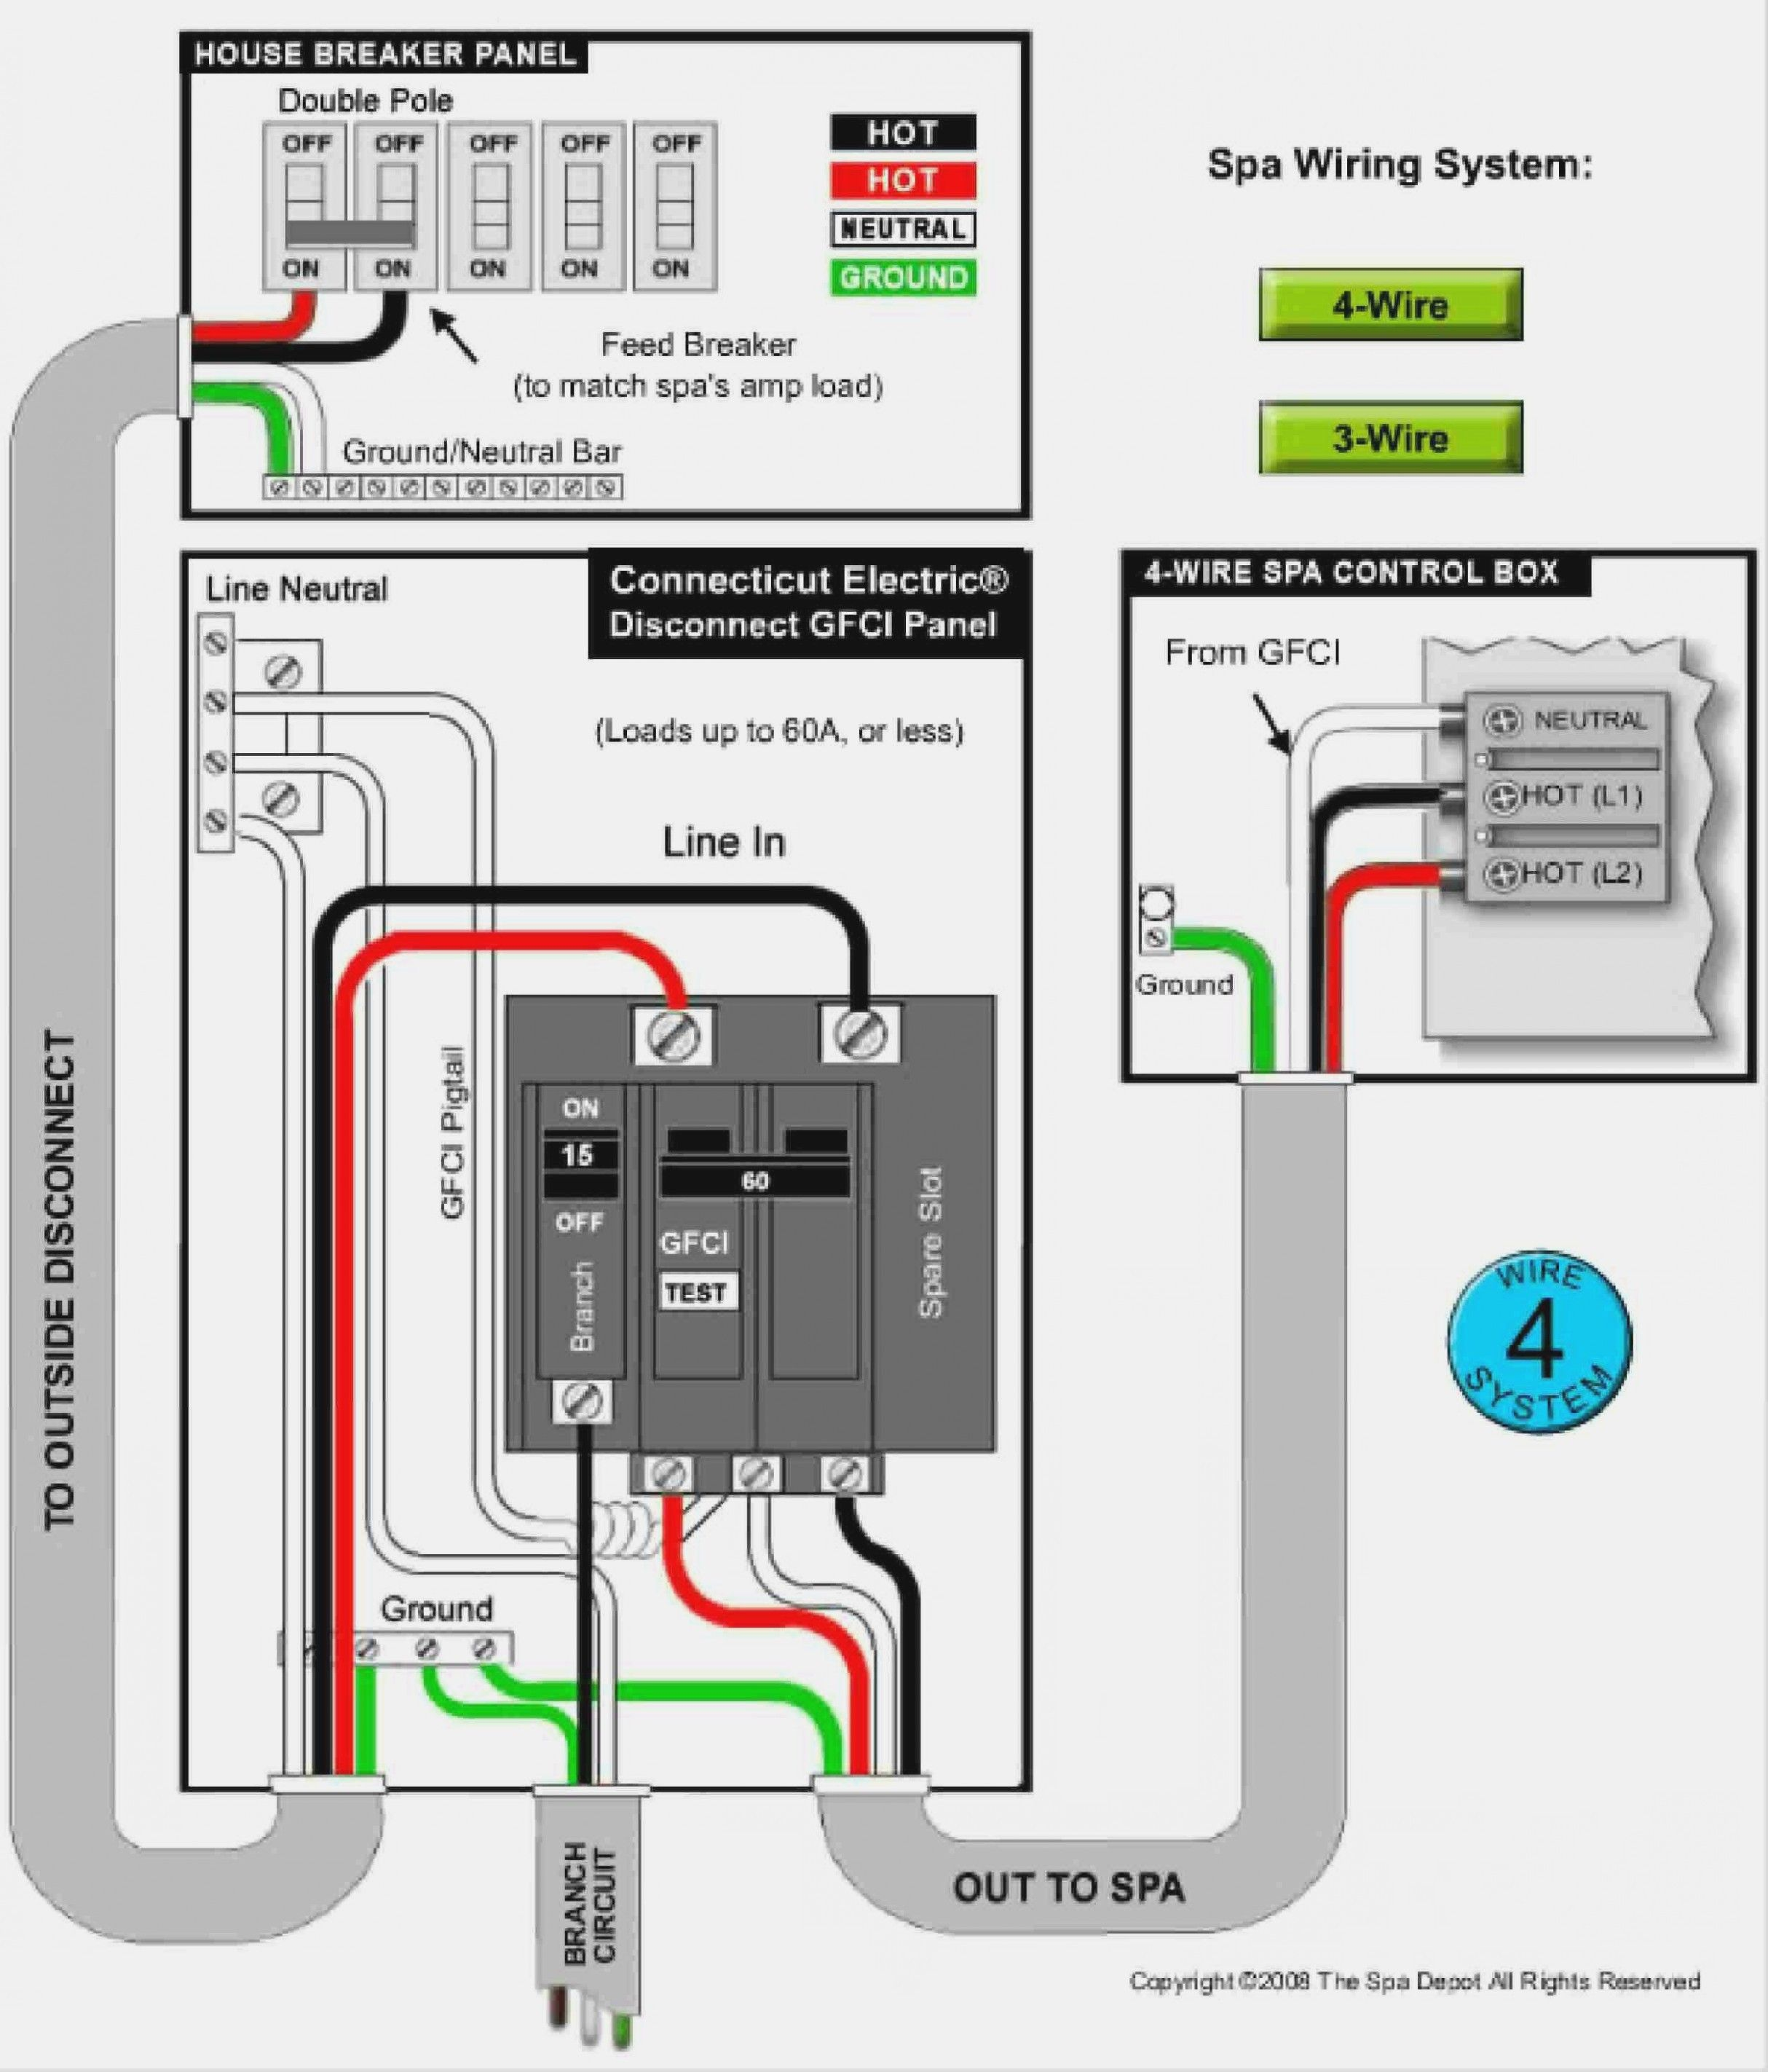 hight resolution of spa gfci wiring data diagram schematic spa gfci wiring instructions spa gfci wiring